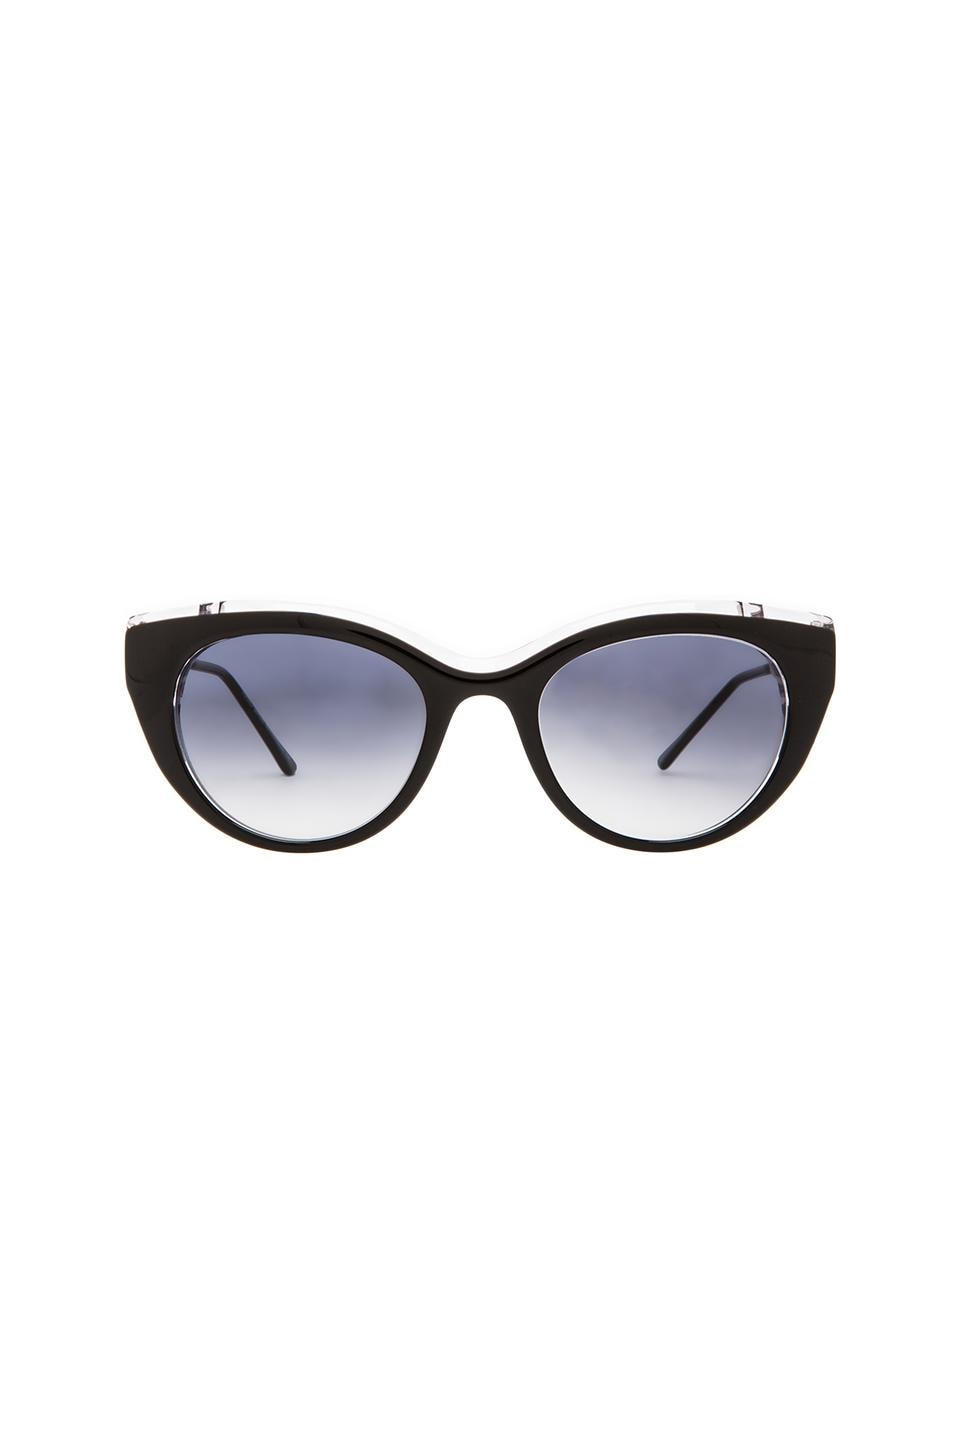 Thierry Lasry Diamondy Sunglasses in 21